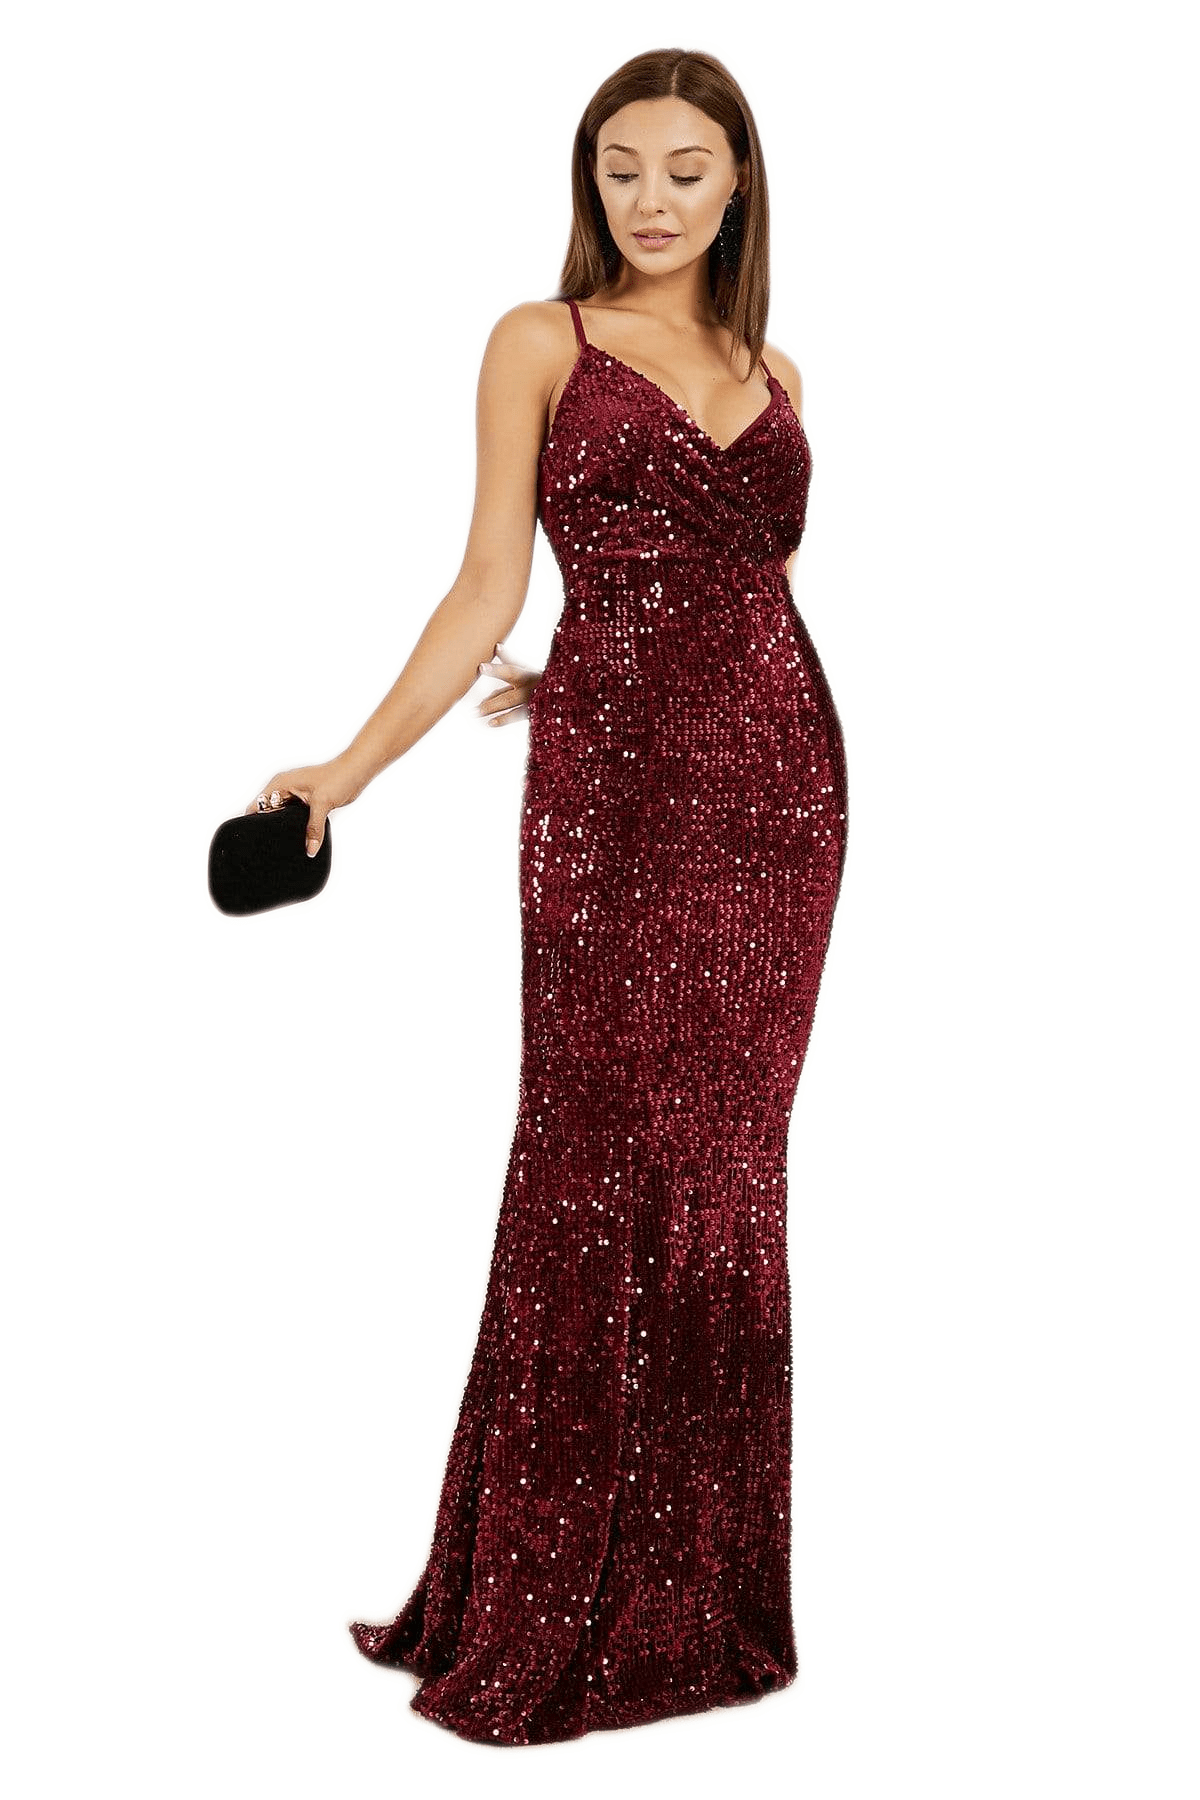 Women's Claret Red Long Evening Dress.